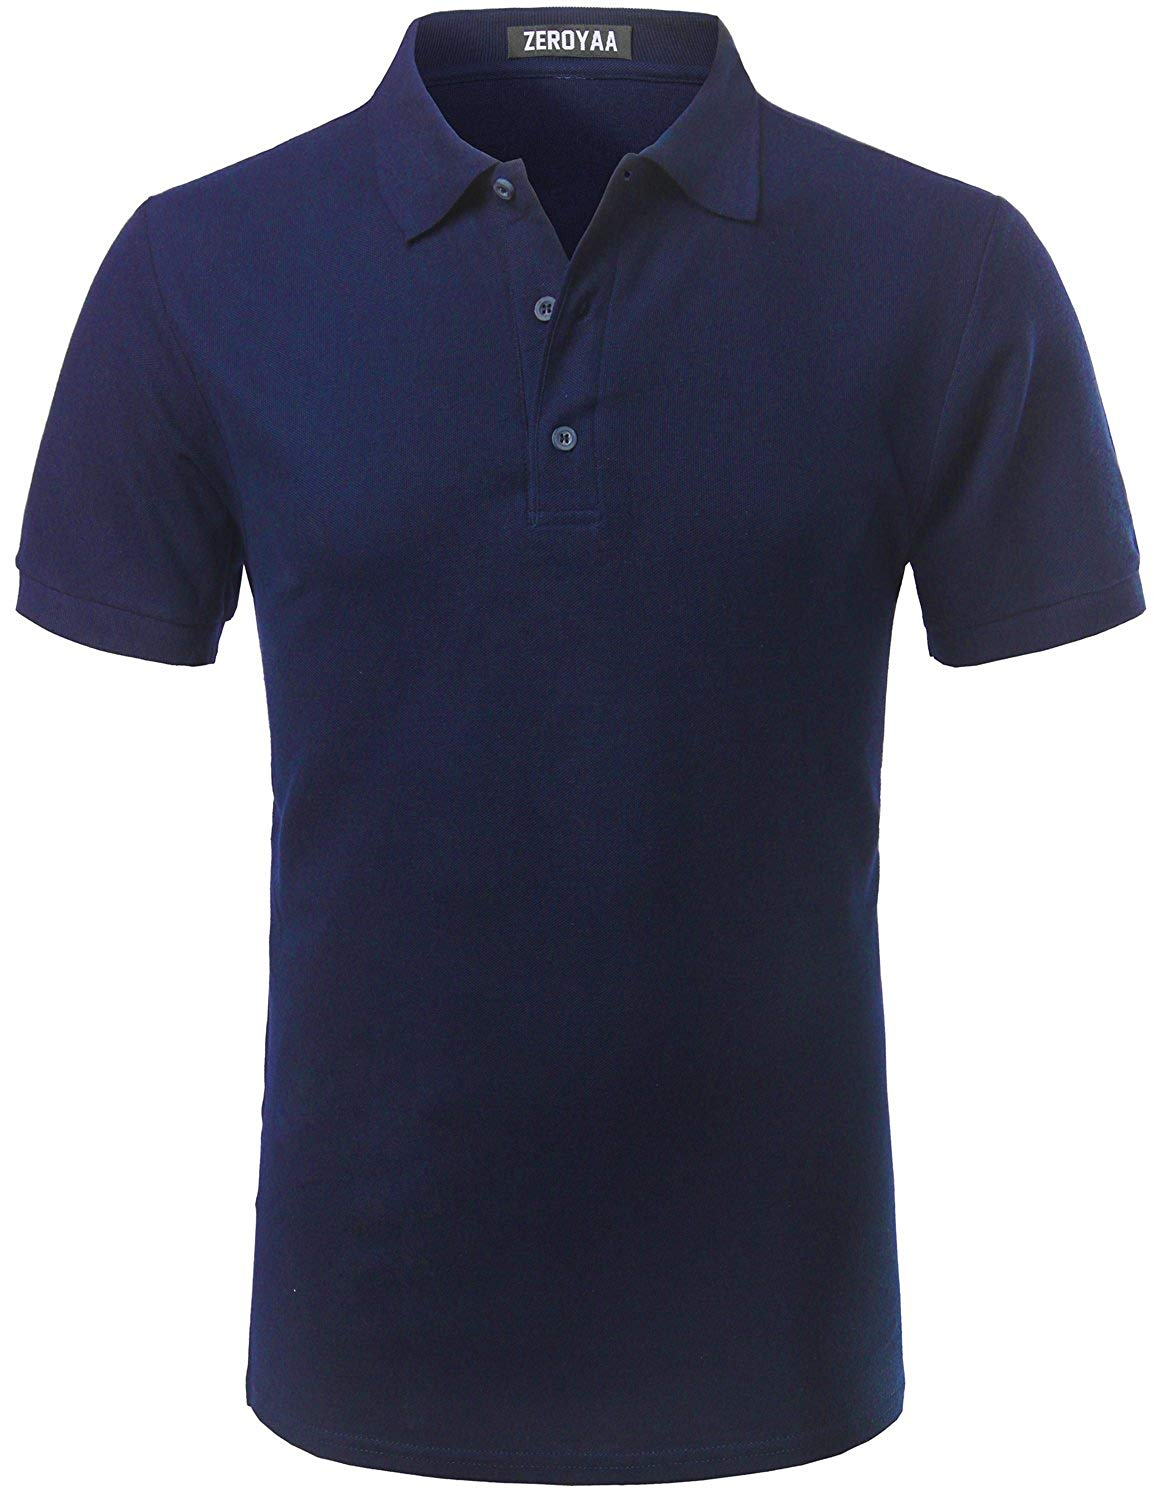 Sonjer Clothing Mens Polo Shirt Short Sleeve Men Cotton Solid Casual Polo Shirts Men Polo Fashion Slim Fit Polos S-3Xl